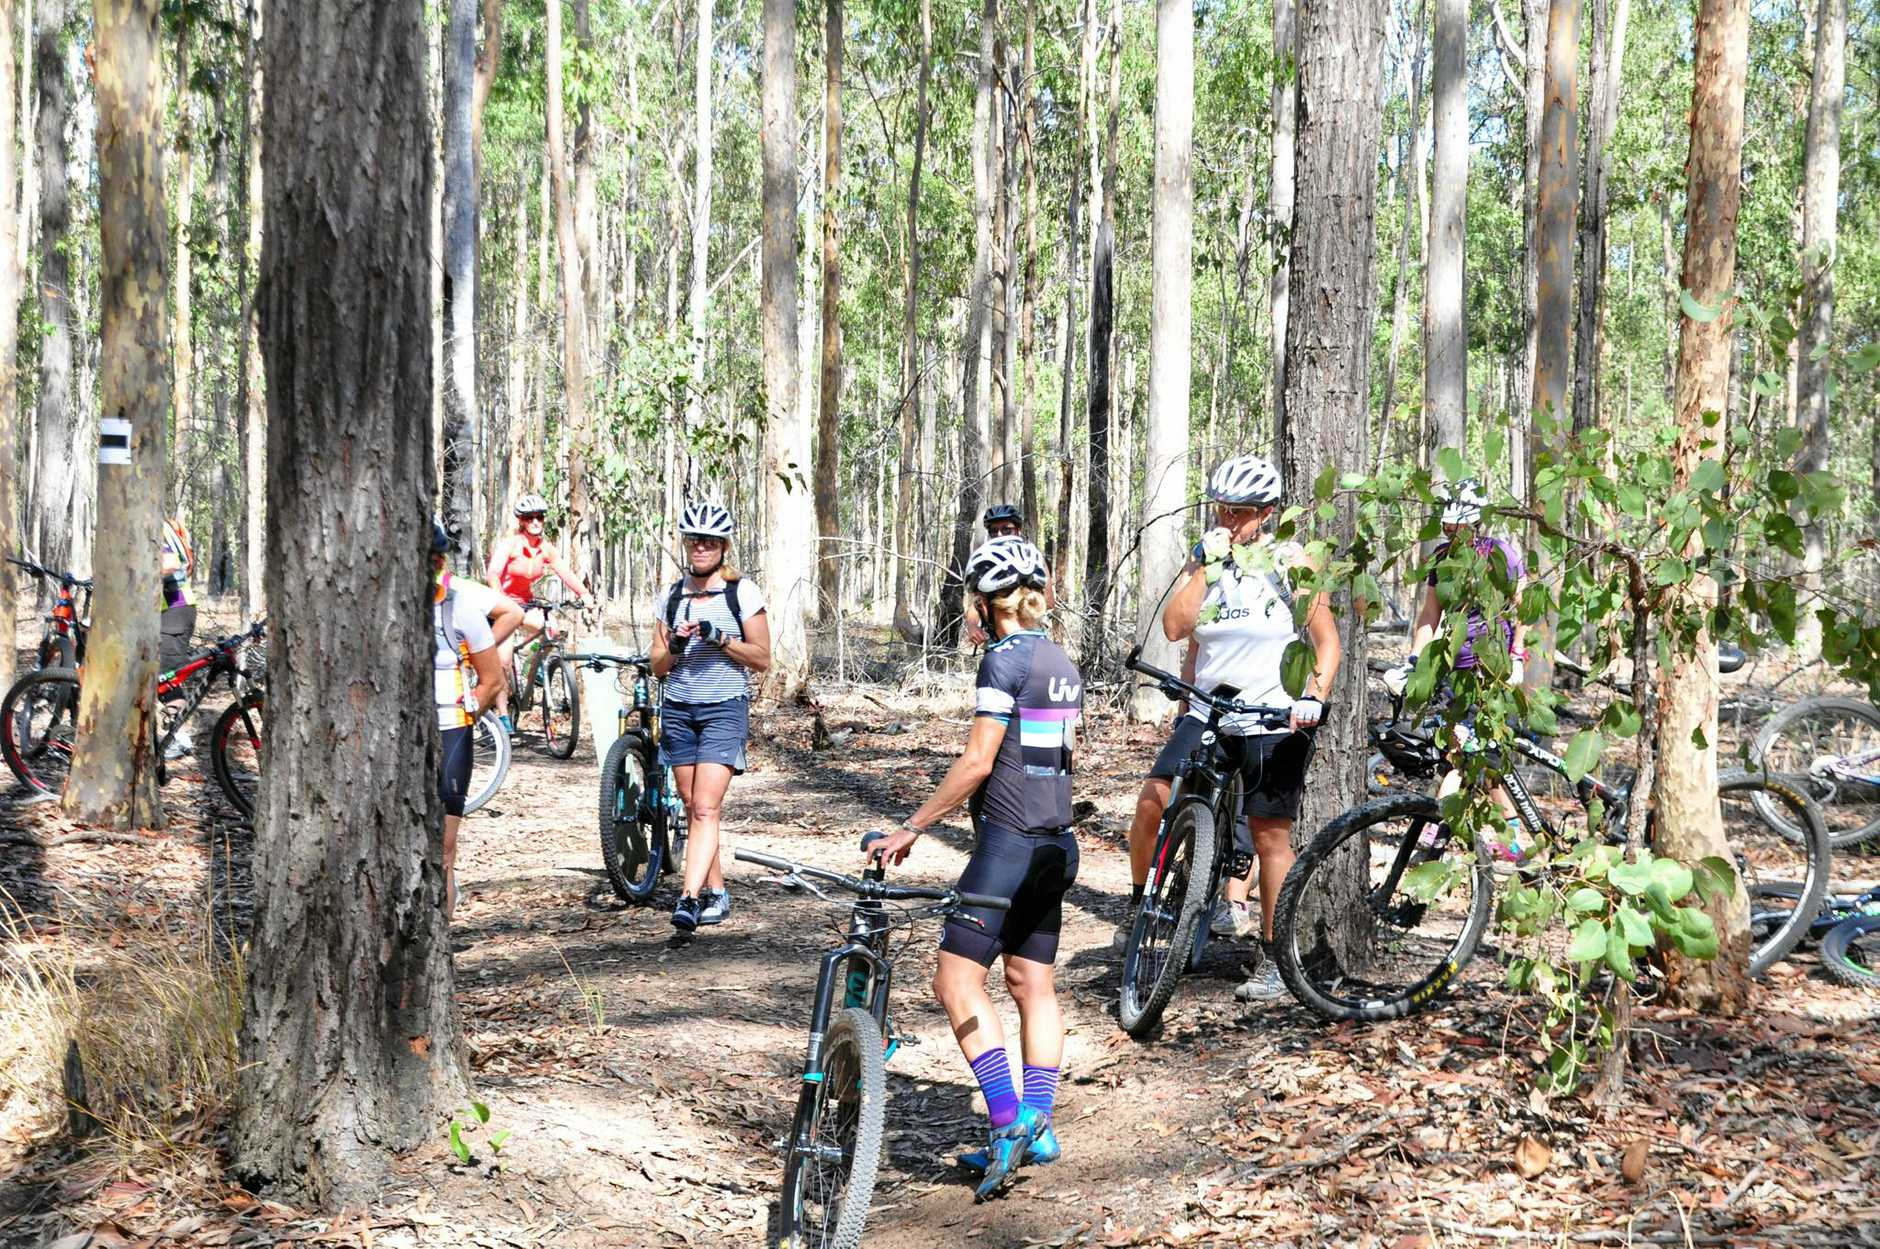 MTBA coach Jodie Willett gives her group a few lessons before setting off during the Mountain Bikking Australia women's skills session at Bom Bom State Forest.